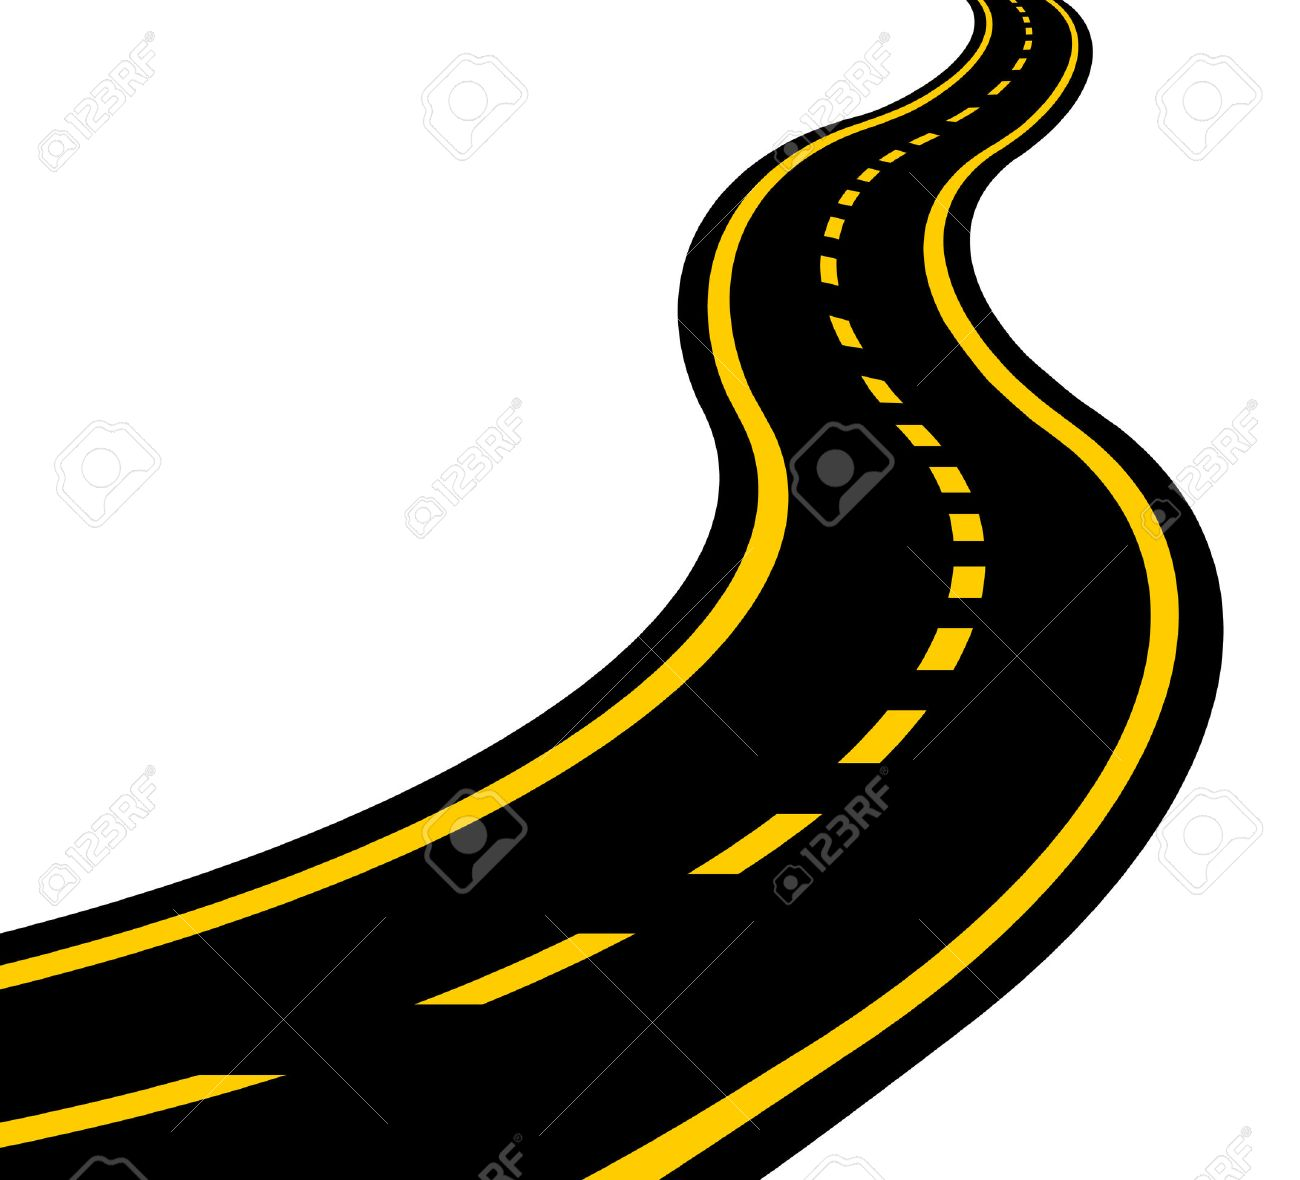 Clipart road winding road. Free download best